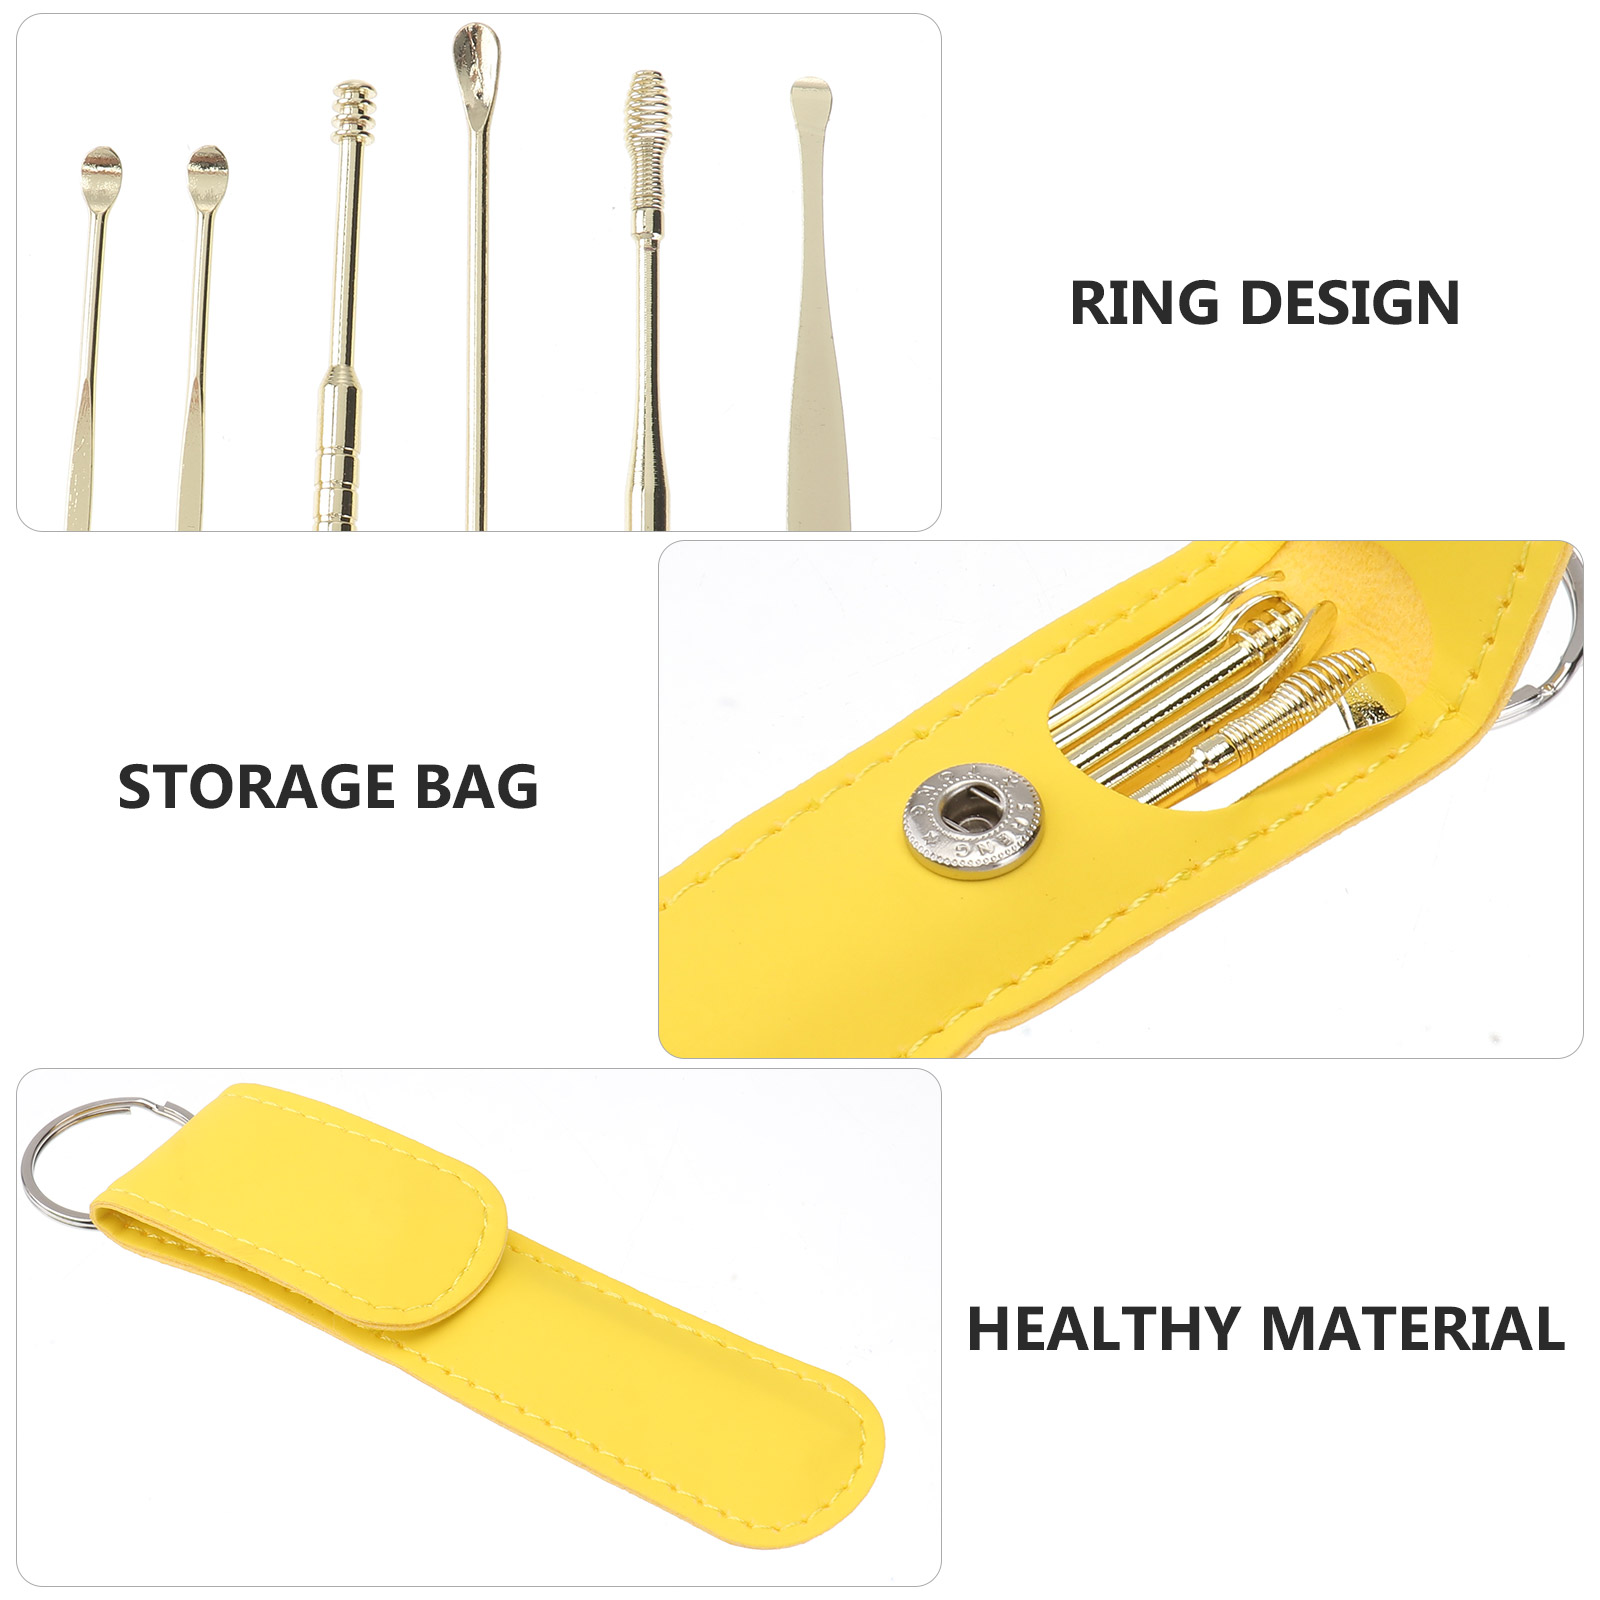 Ear Wax Removal Kit,Portable 6-in-1 Ear Pick Tools,Ear Cleaning Kit for Home and Travel,Reusable Ear Curette for Children and Adults(Yellow)